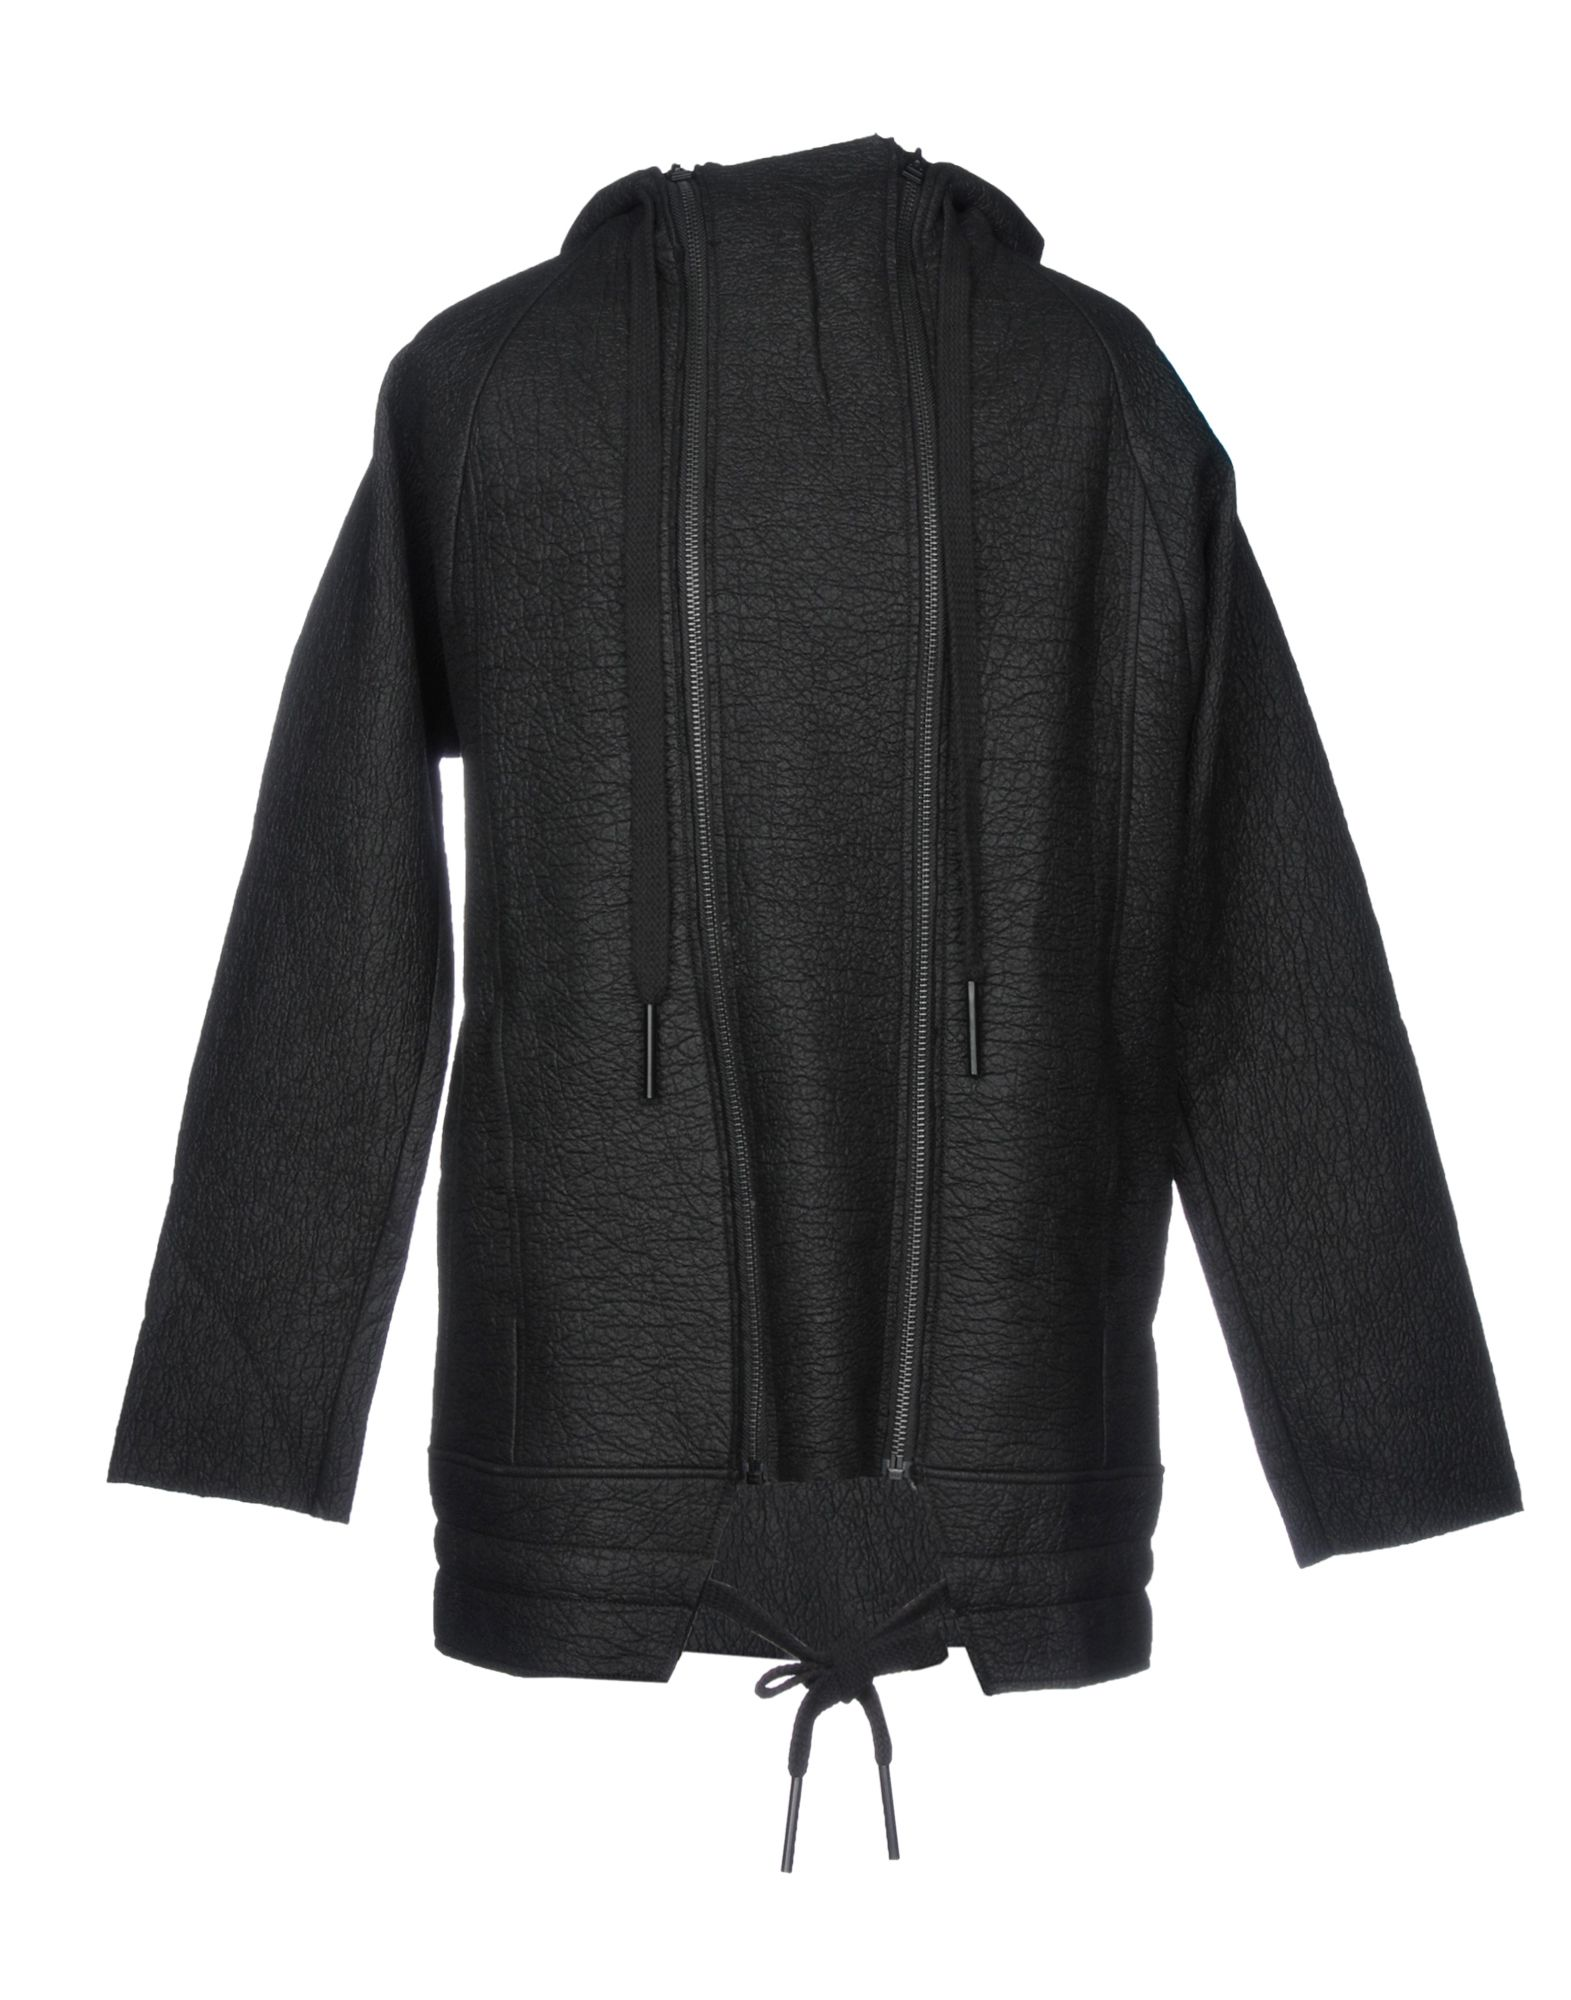 BARBARA I GONGINI Hooded Sweatshirt in Black